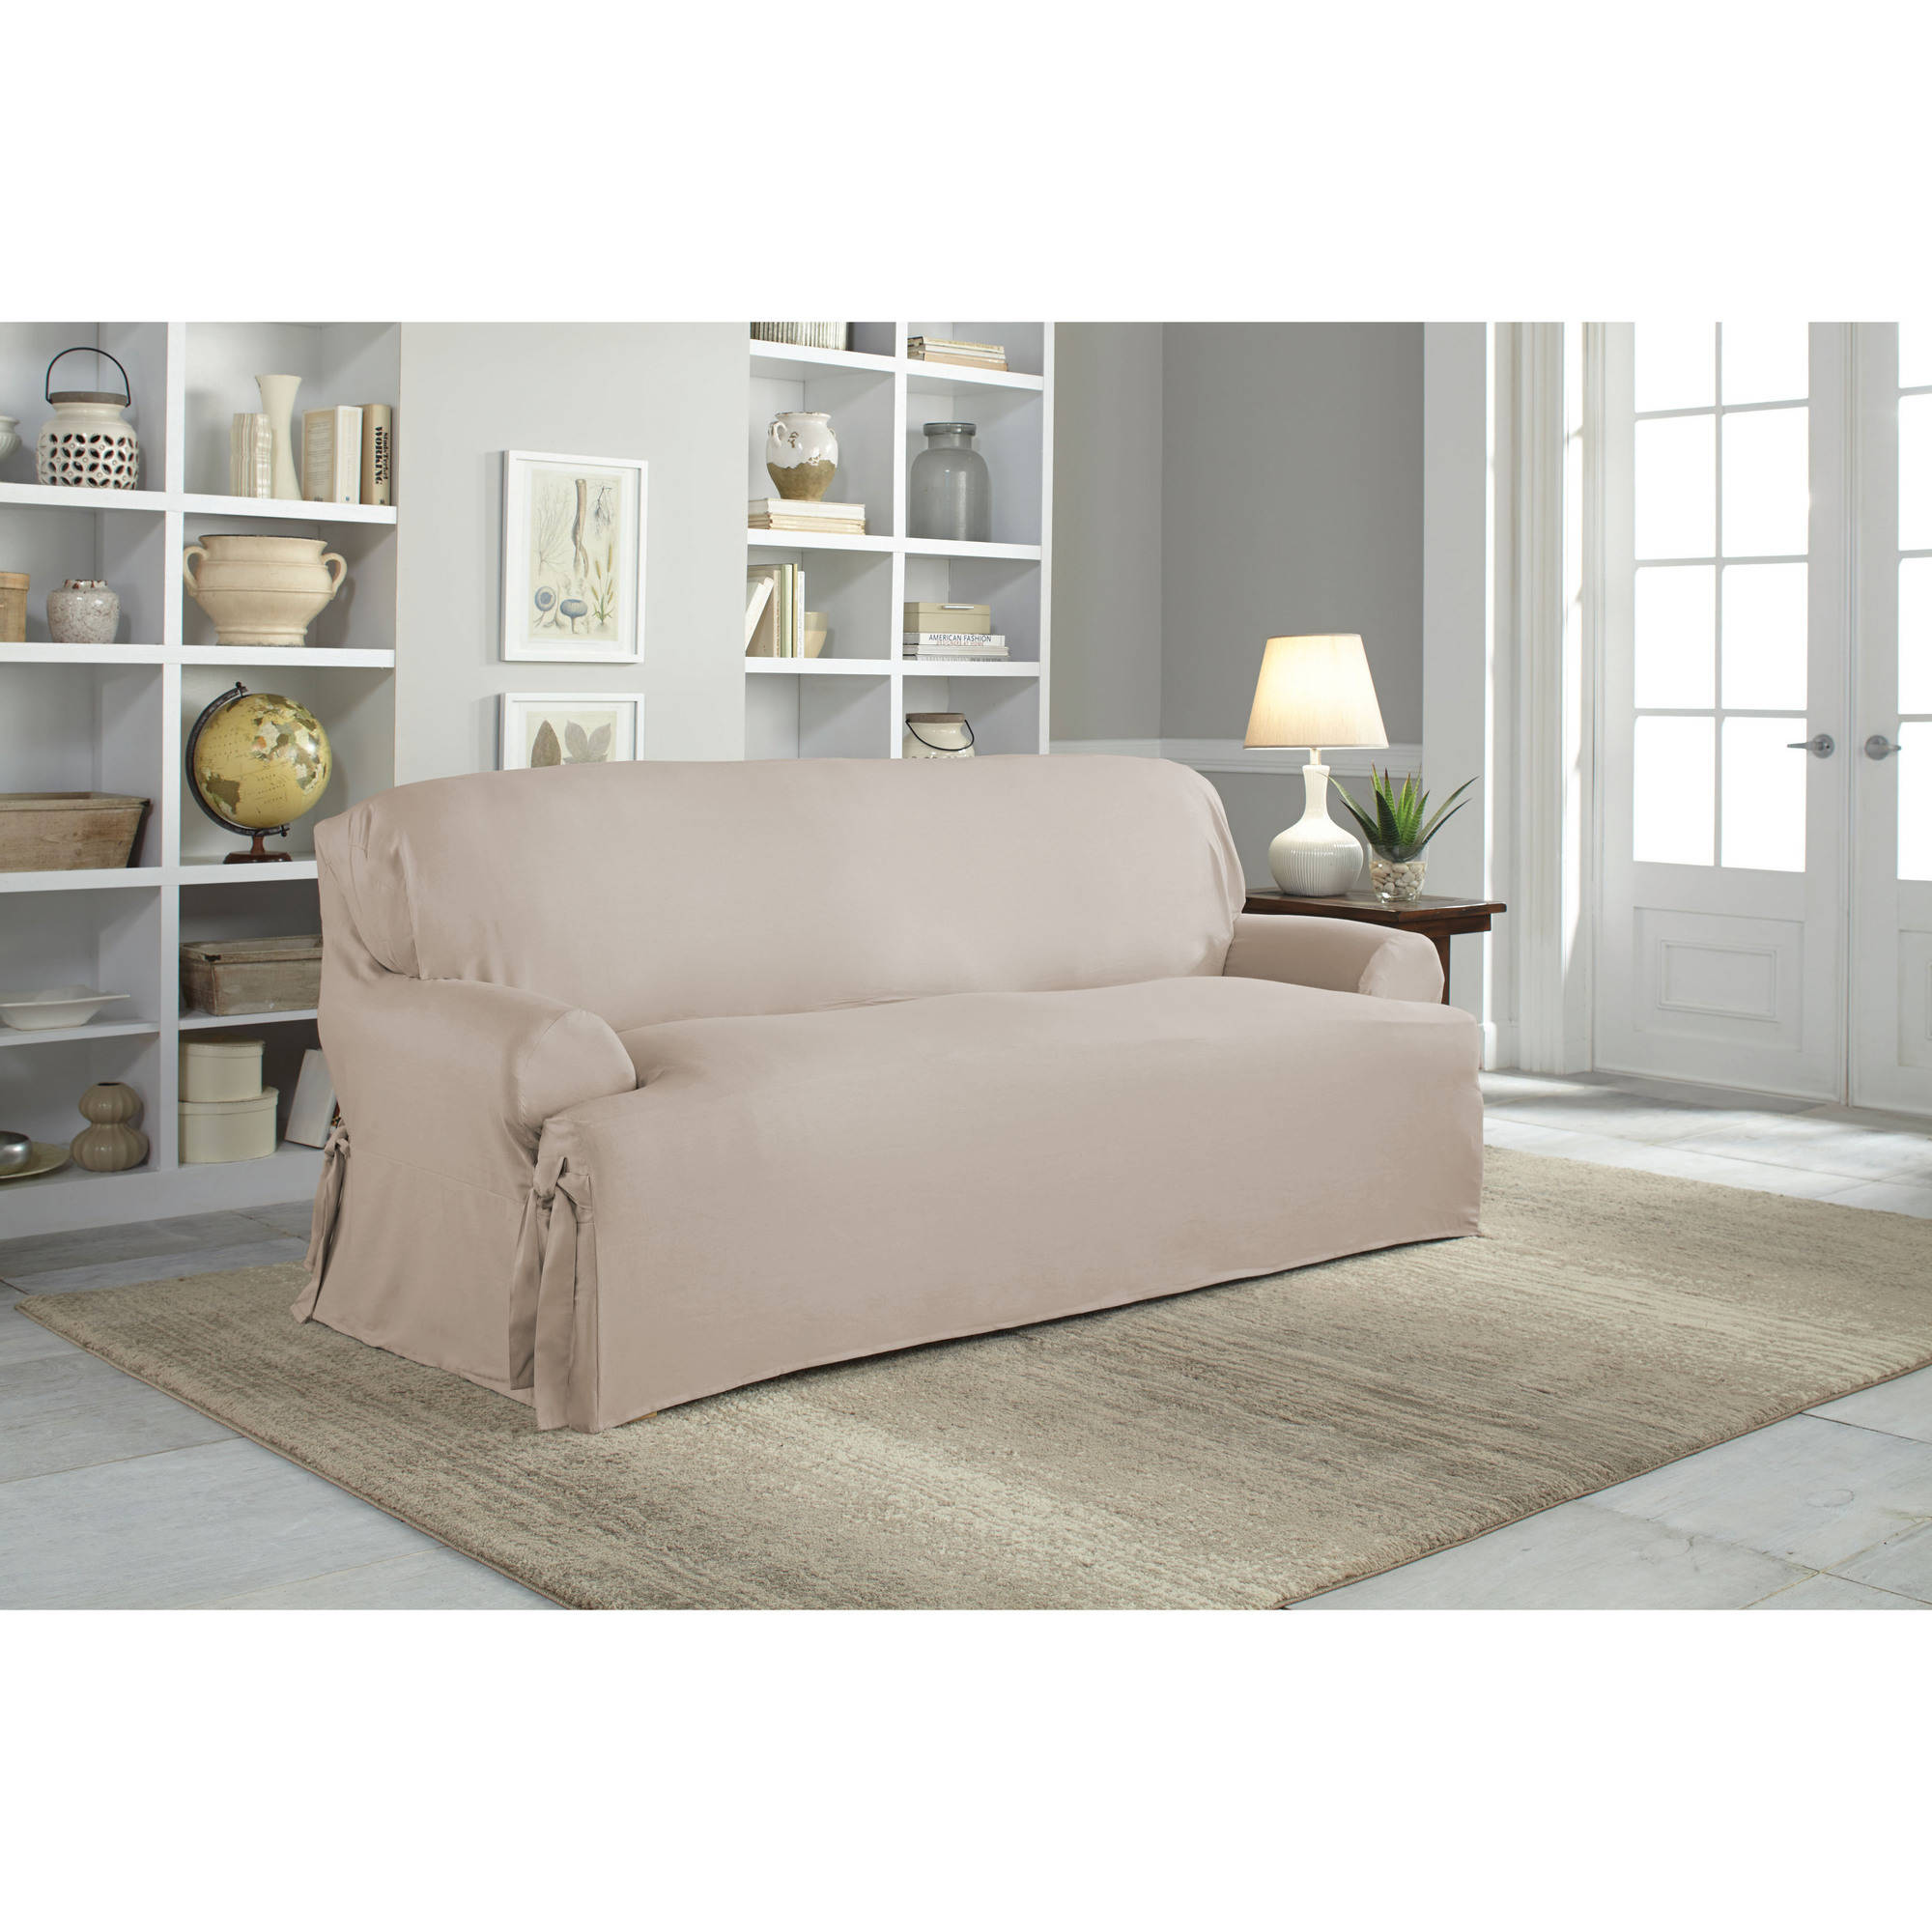 khaki sofa slipcovers thin side table serta relaxed fit duck furniture slipcover 1 piece t